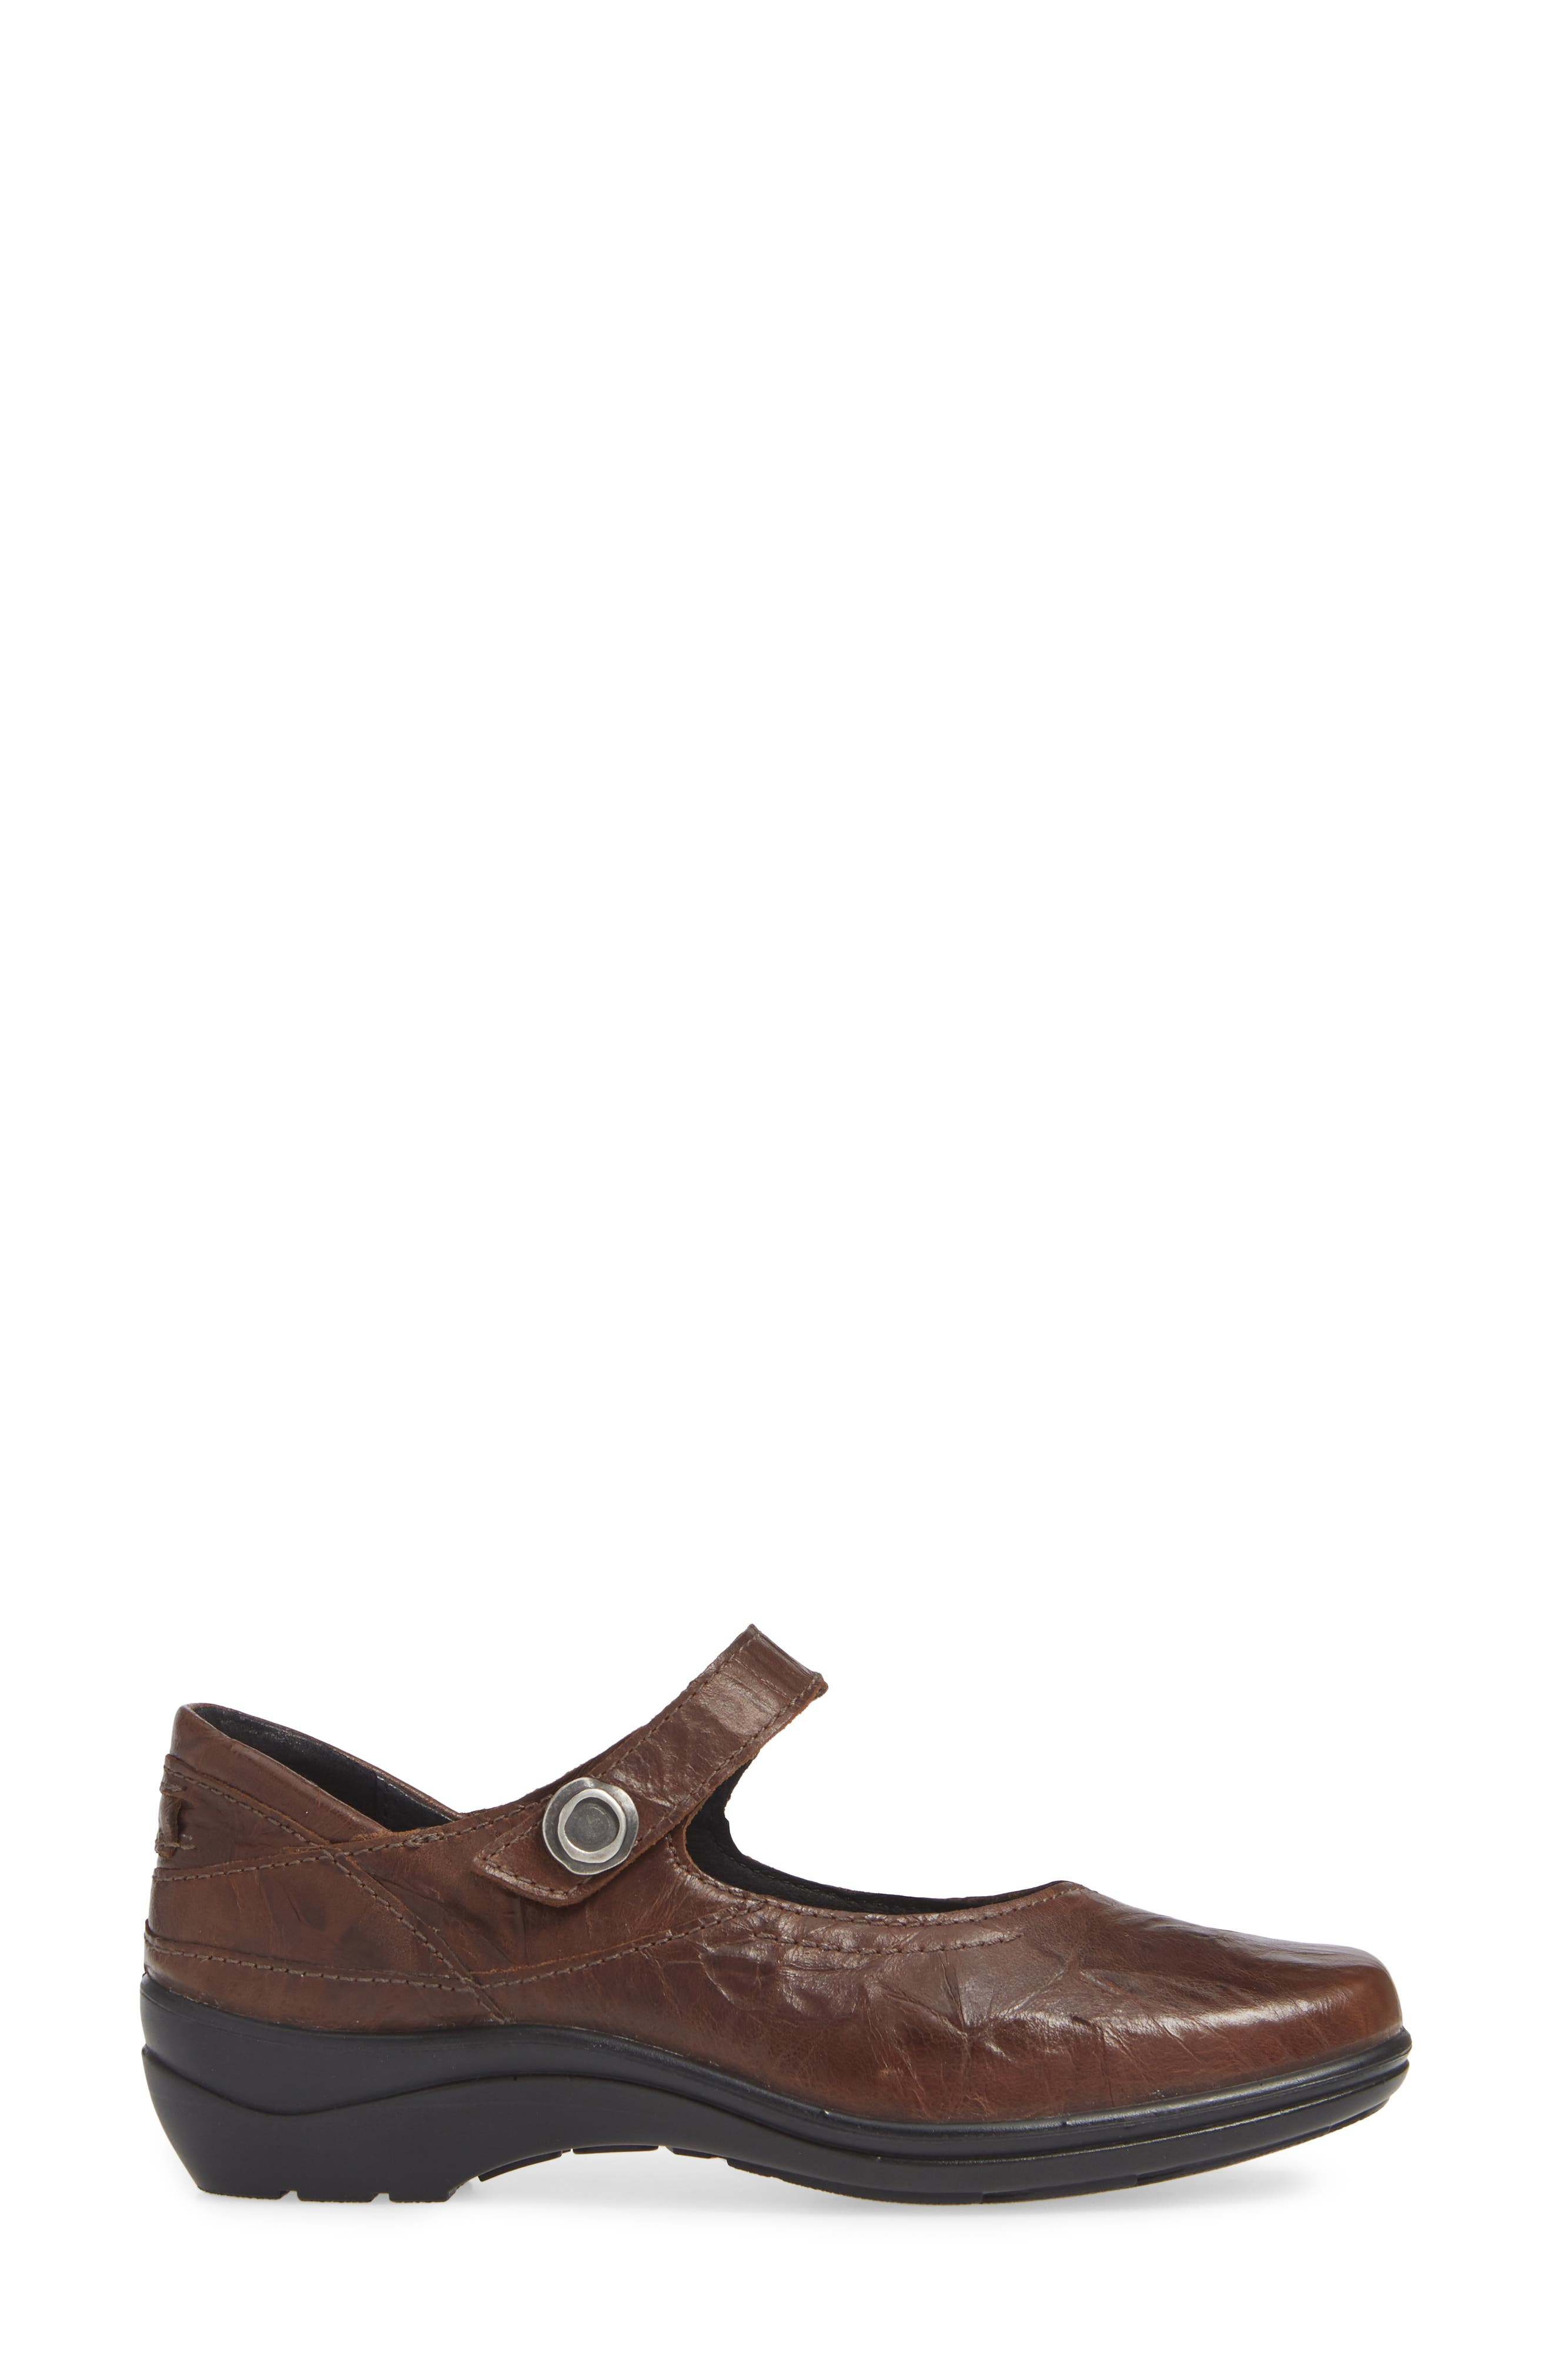 Cassie 50 Mary Jane Flat,                             Alternate thumbnail 3, color,                             BROWN LEATHER